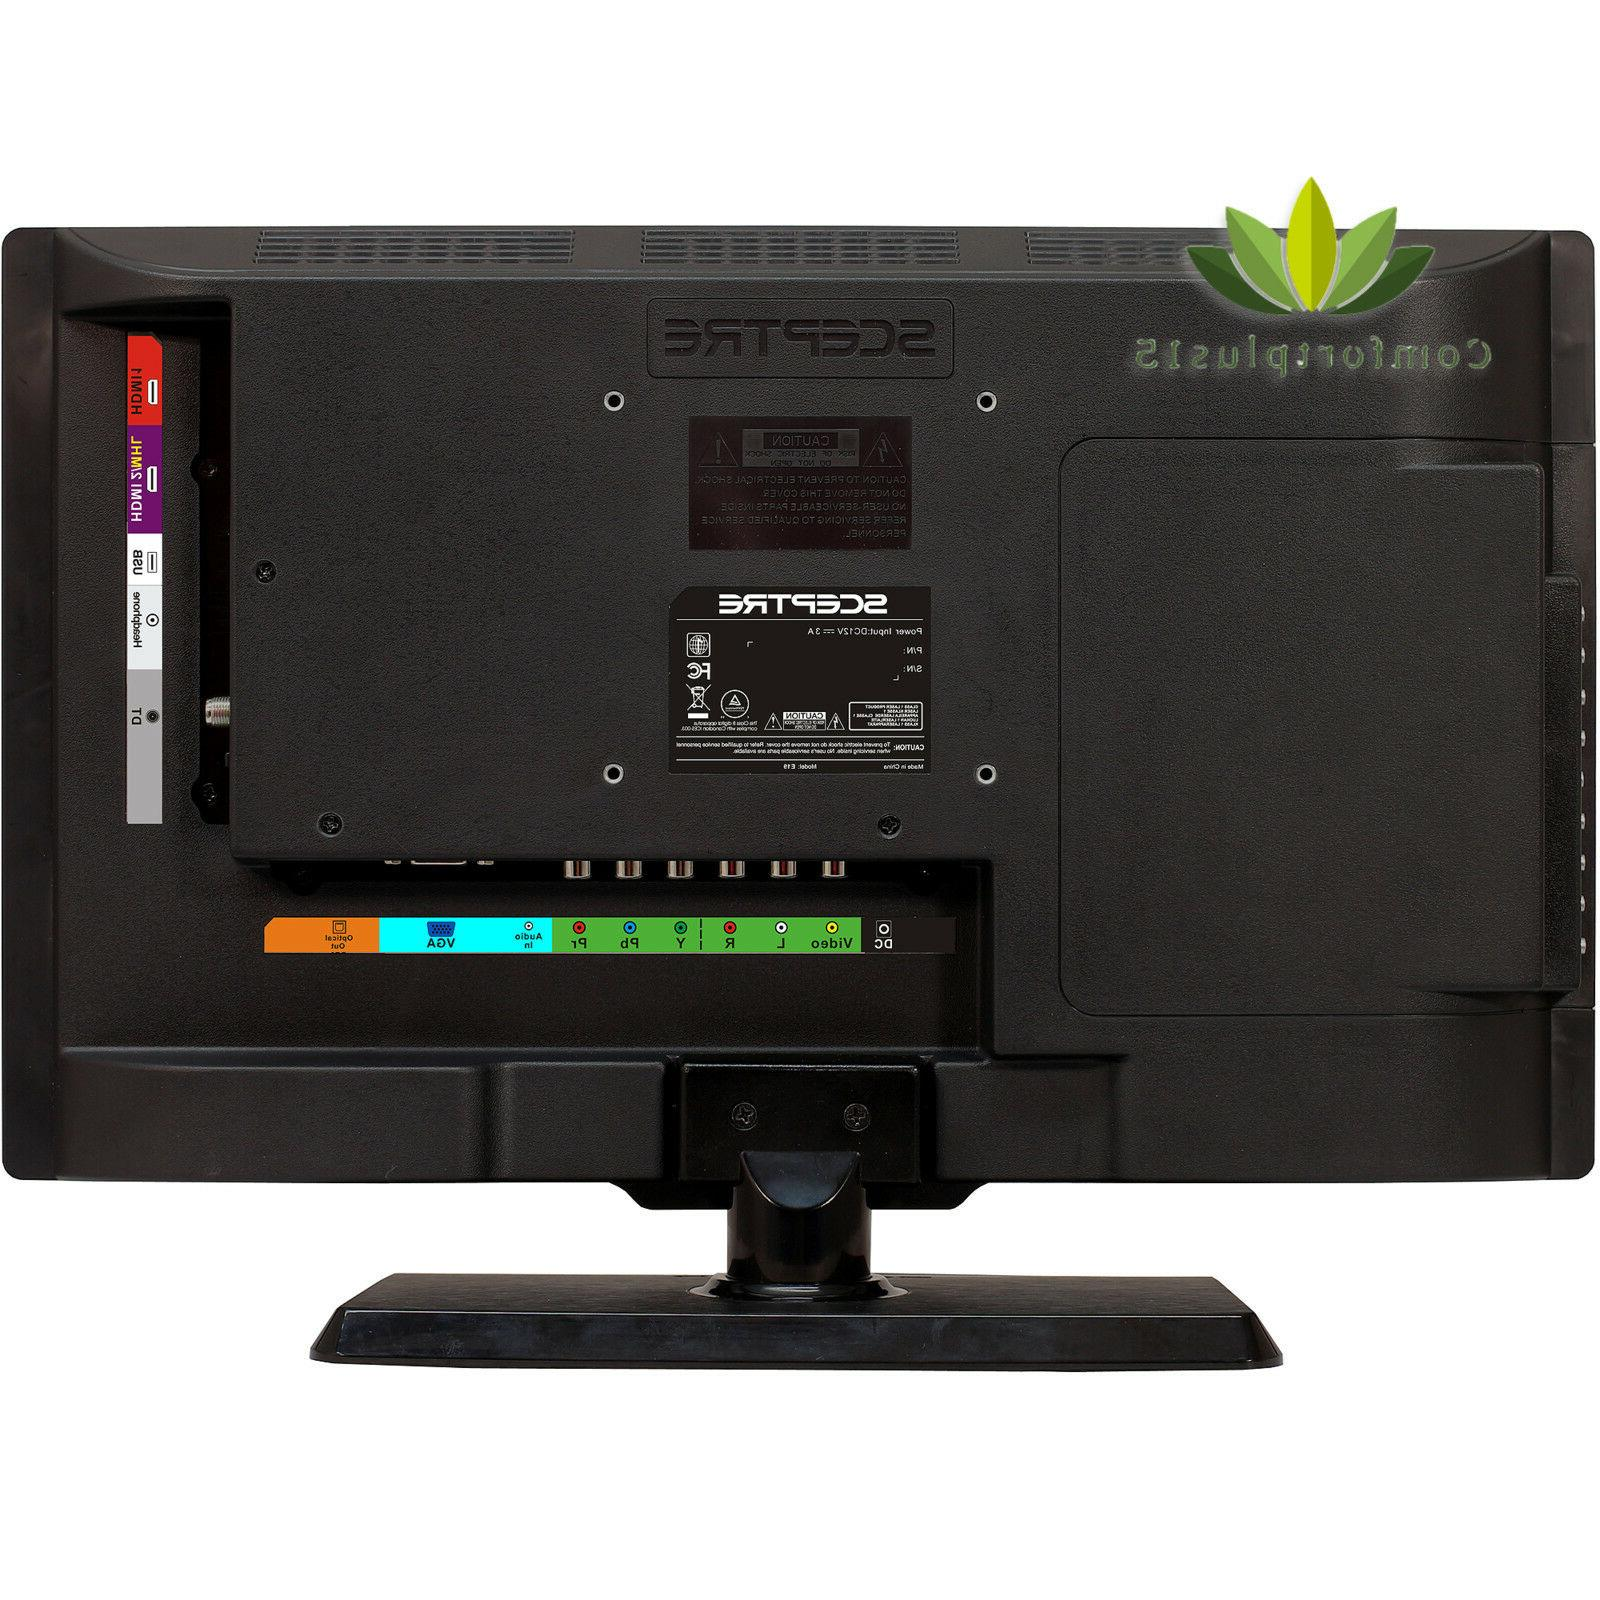 HD, LED 720p, 60Hz Built-in DVD Player